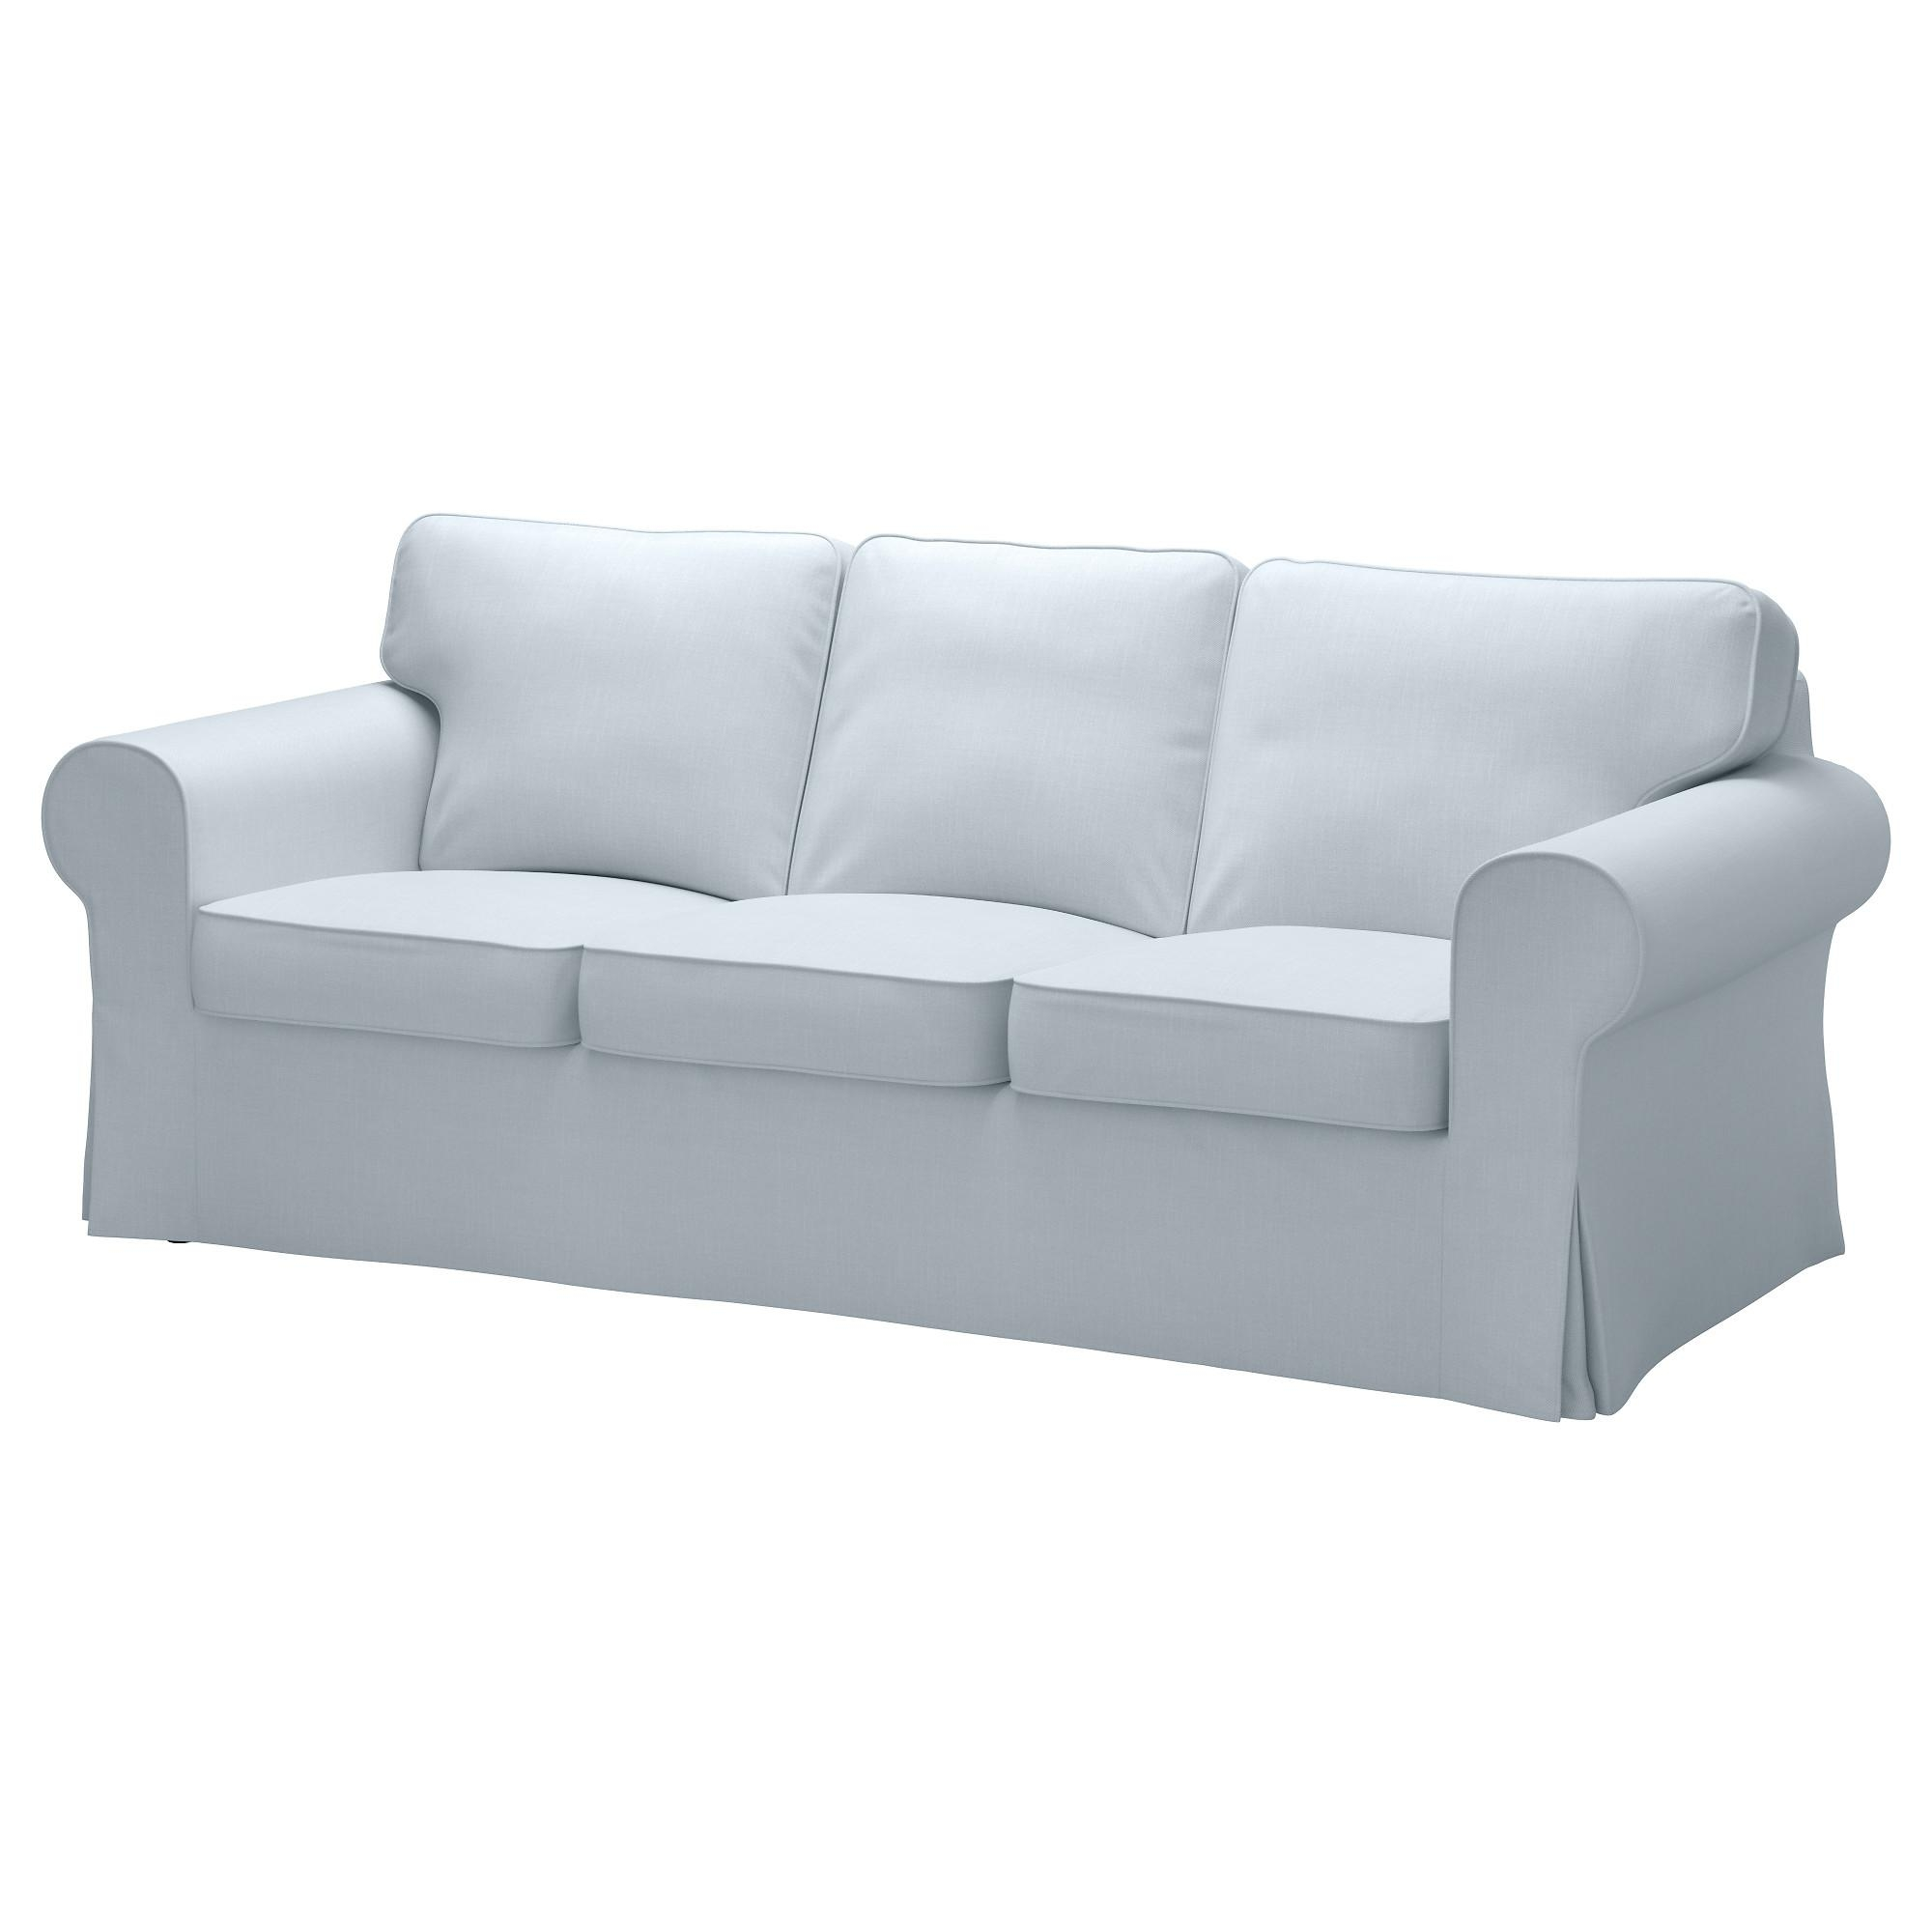 Ektorp Sofa – Lofallet Beige – Ikea Intended For Sofa With Removable Cover (View 8 of 20)